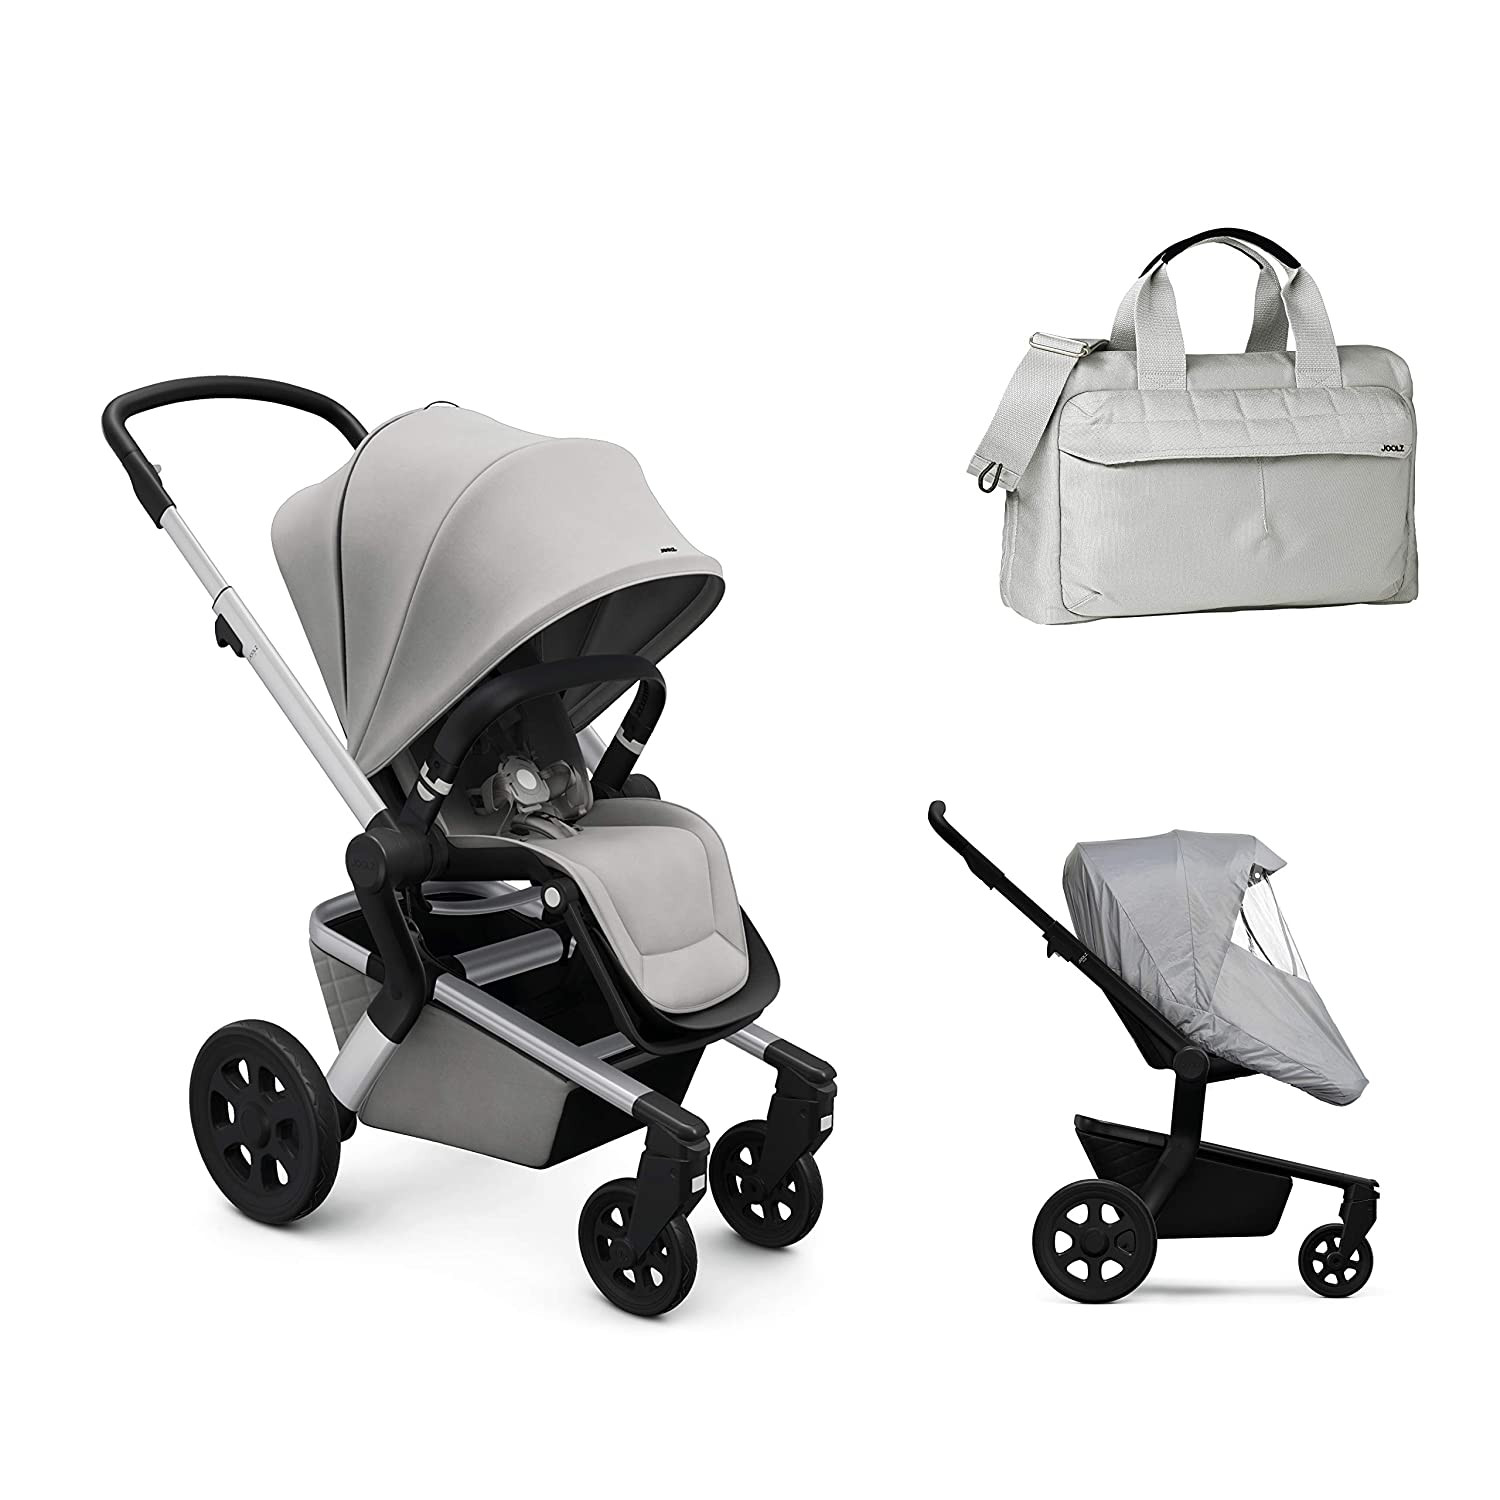 Joolz Hub Stroller in Stunning Silver with Diaper Bag & Rain Cover